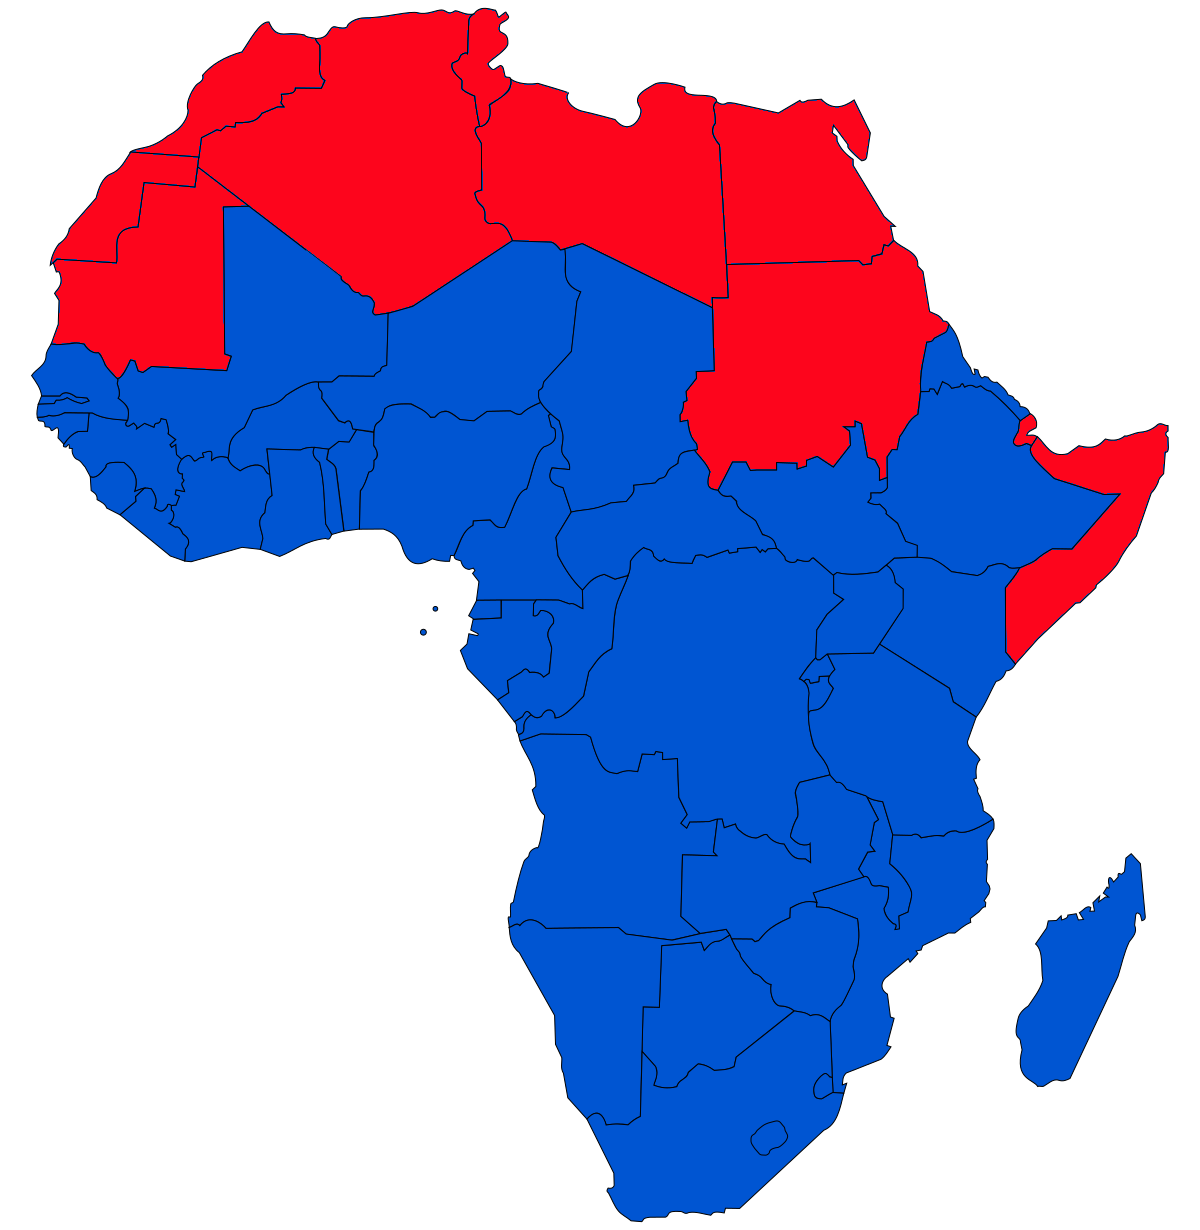 File:Africa map.png.